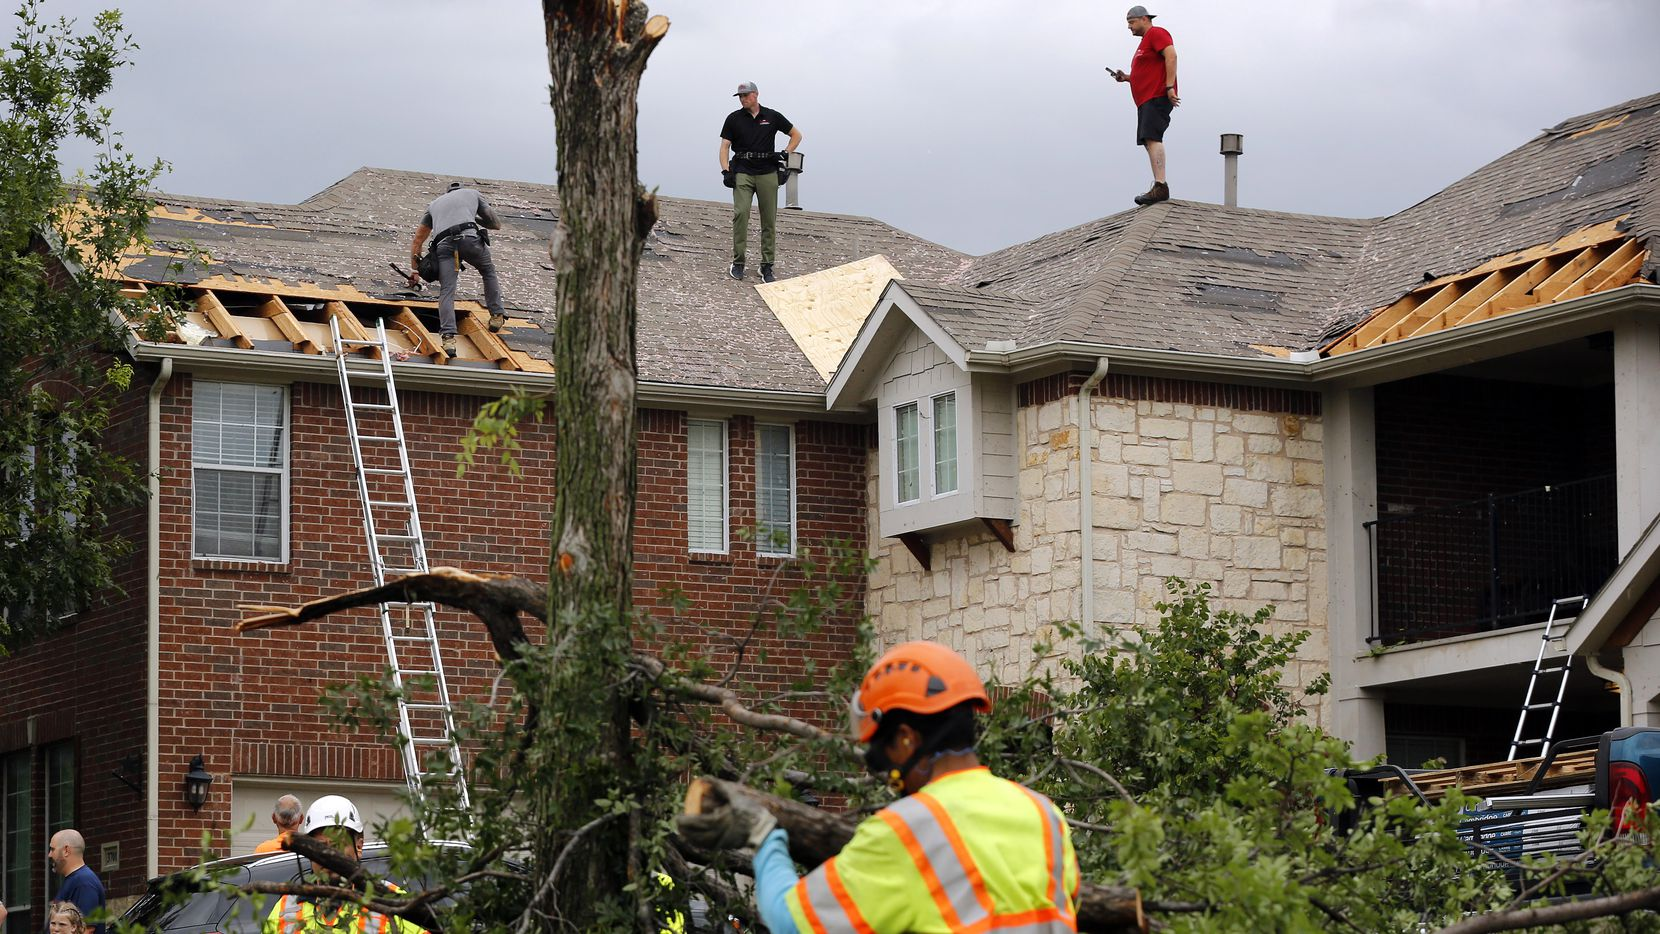 It was a hub of activity on Oliver Drive in North Fort Worth as crews cover damaged rooftops and disposed of splintered trees, Wednesday, May 29, 2019.